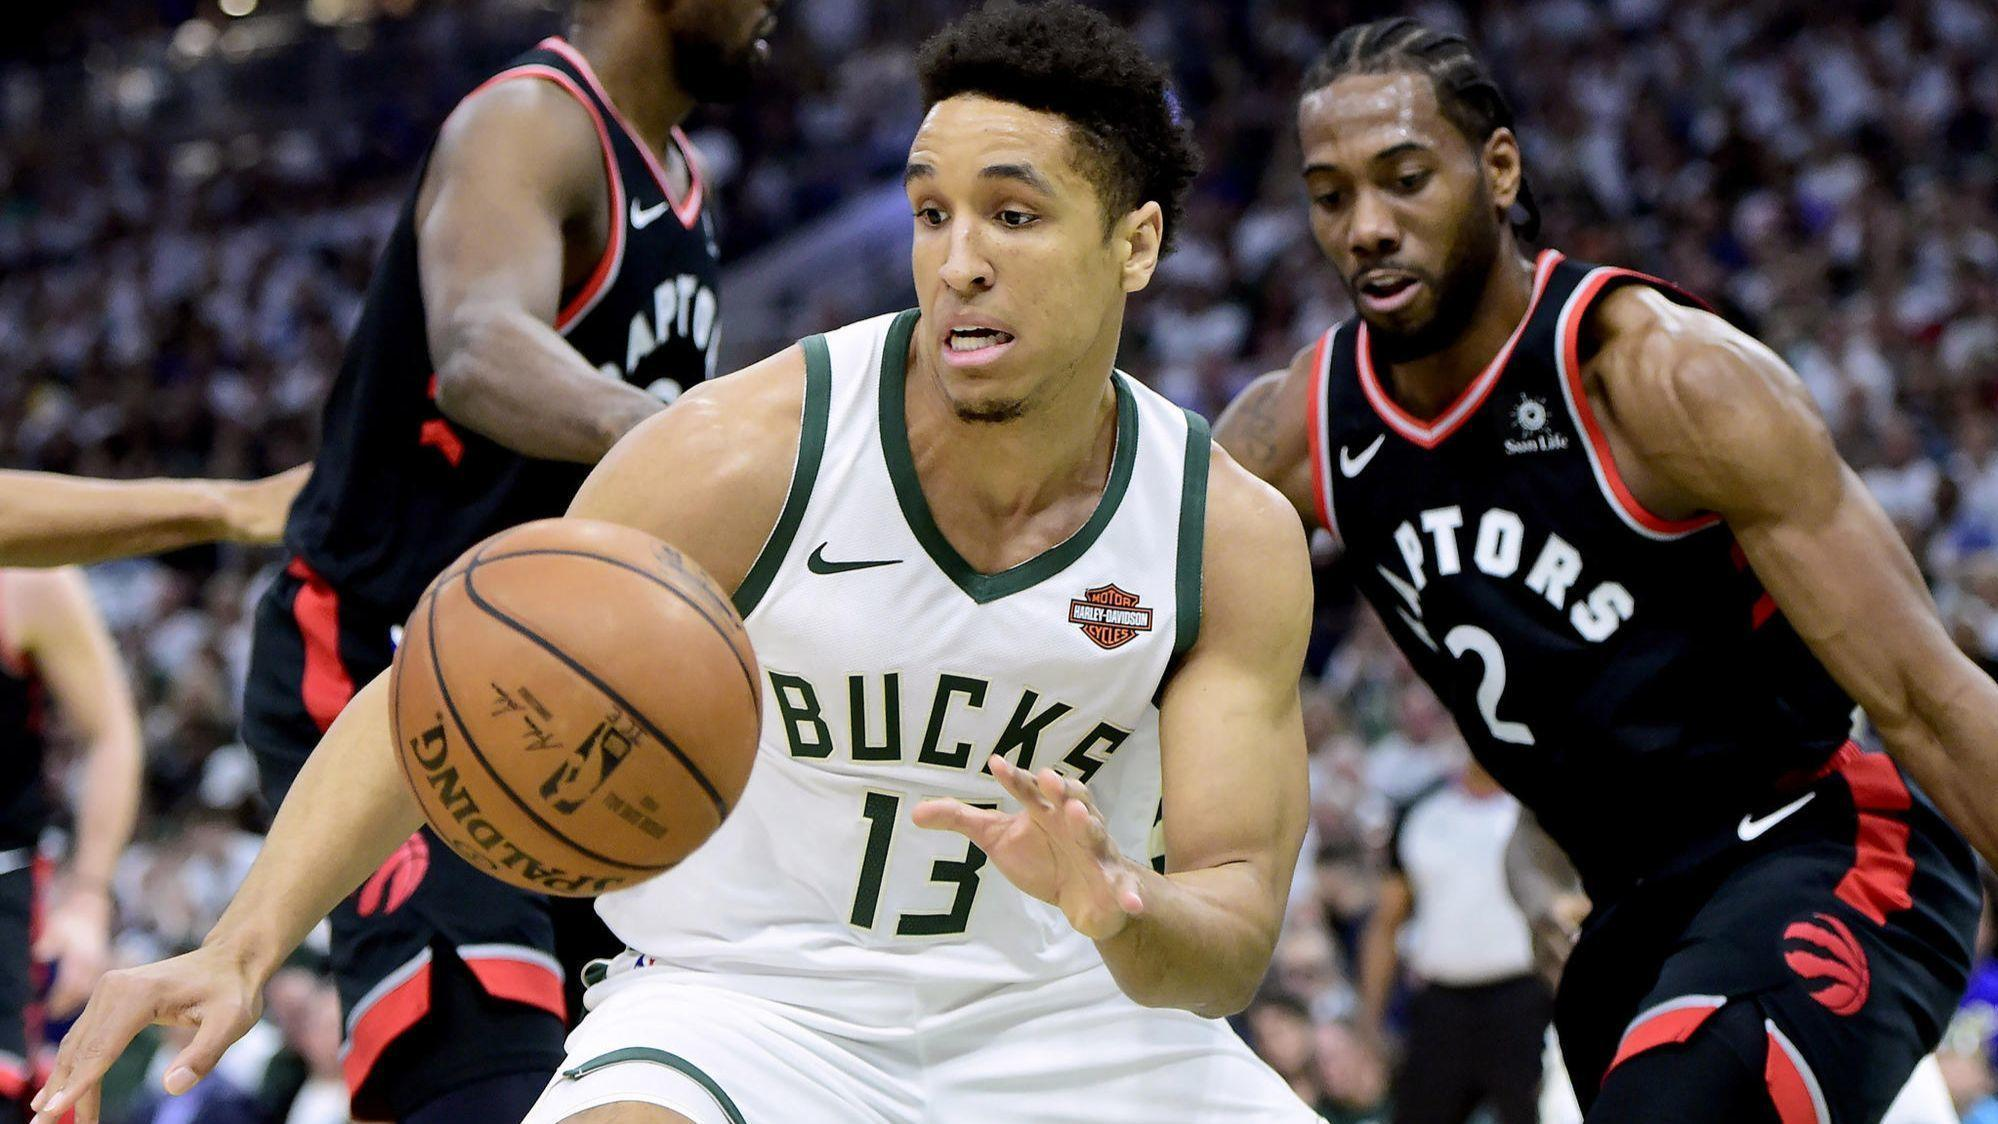 Could Giannis Antetokounmpo's selection to the All-NBA first team help the Bulls land point guard Malcolm Brogdon?